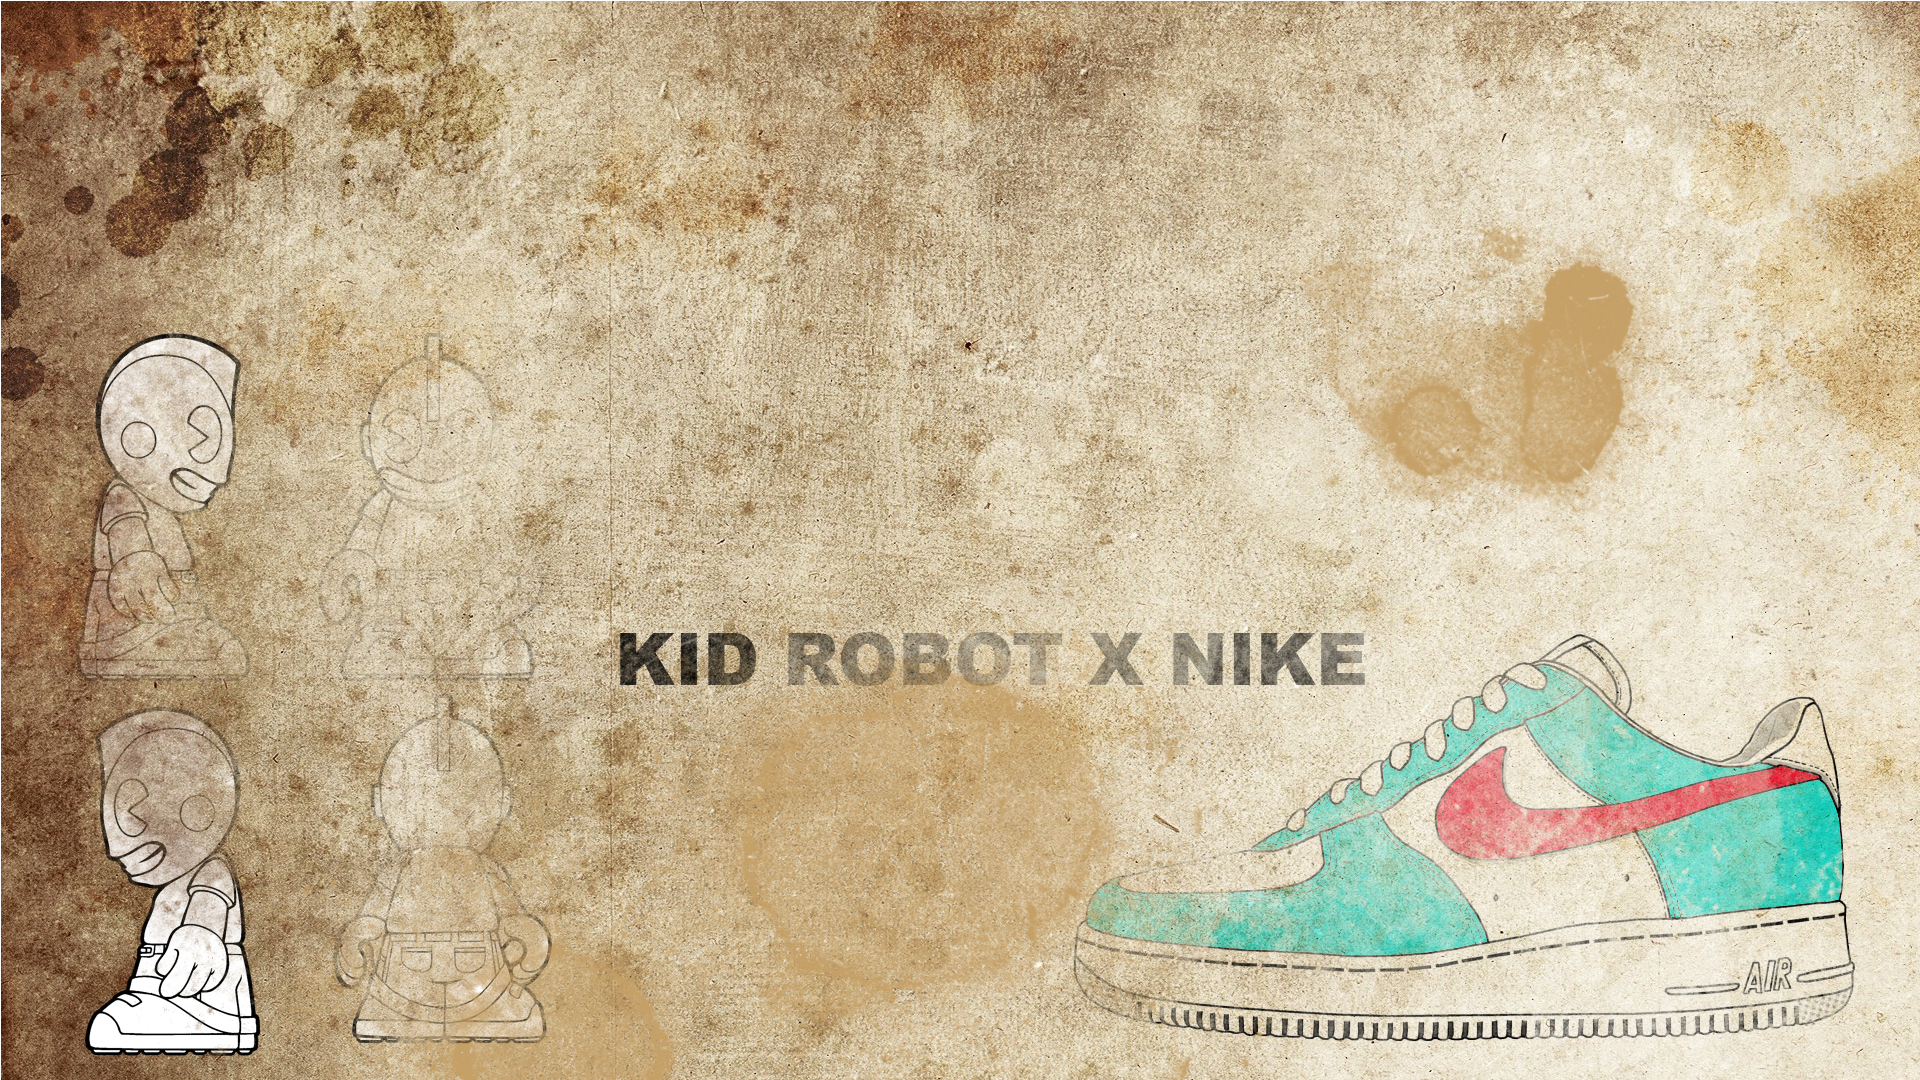 Kid Robot X Nike Wallpapers